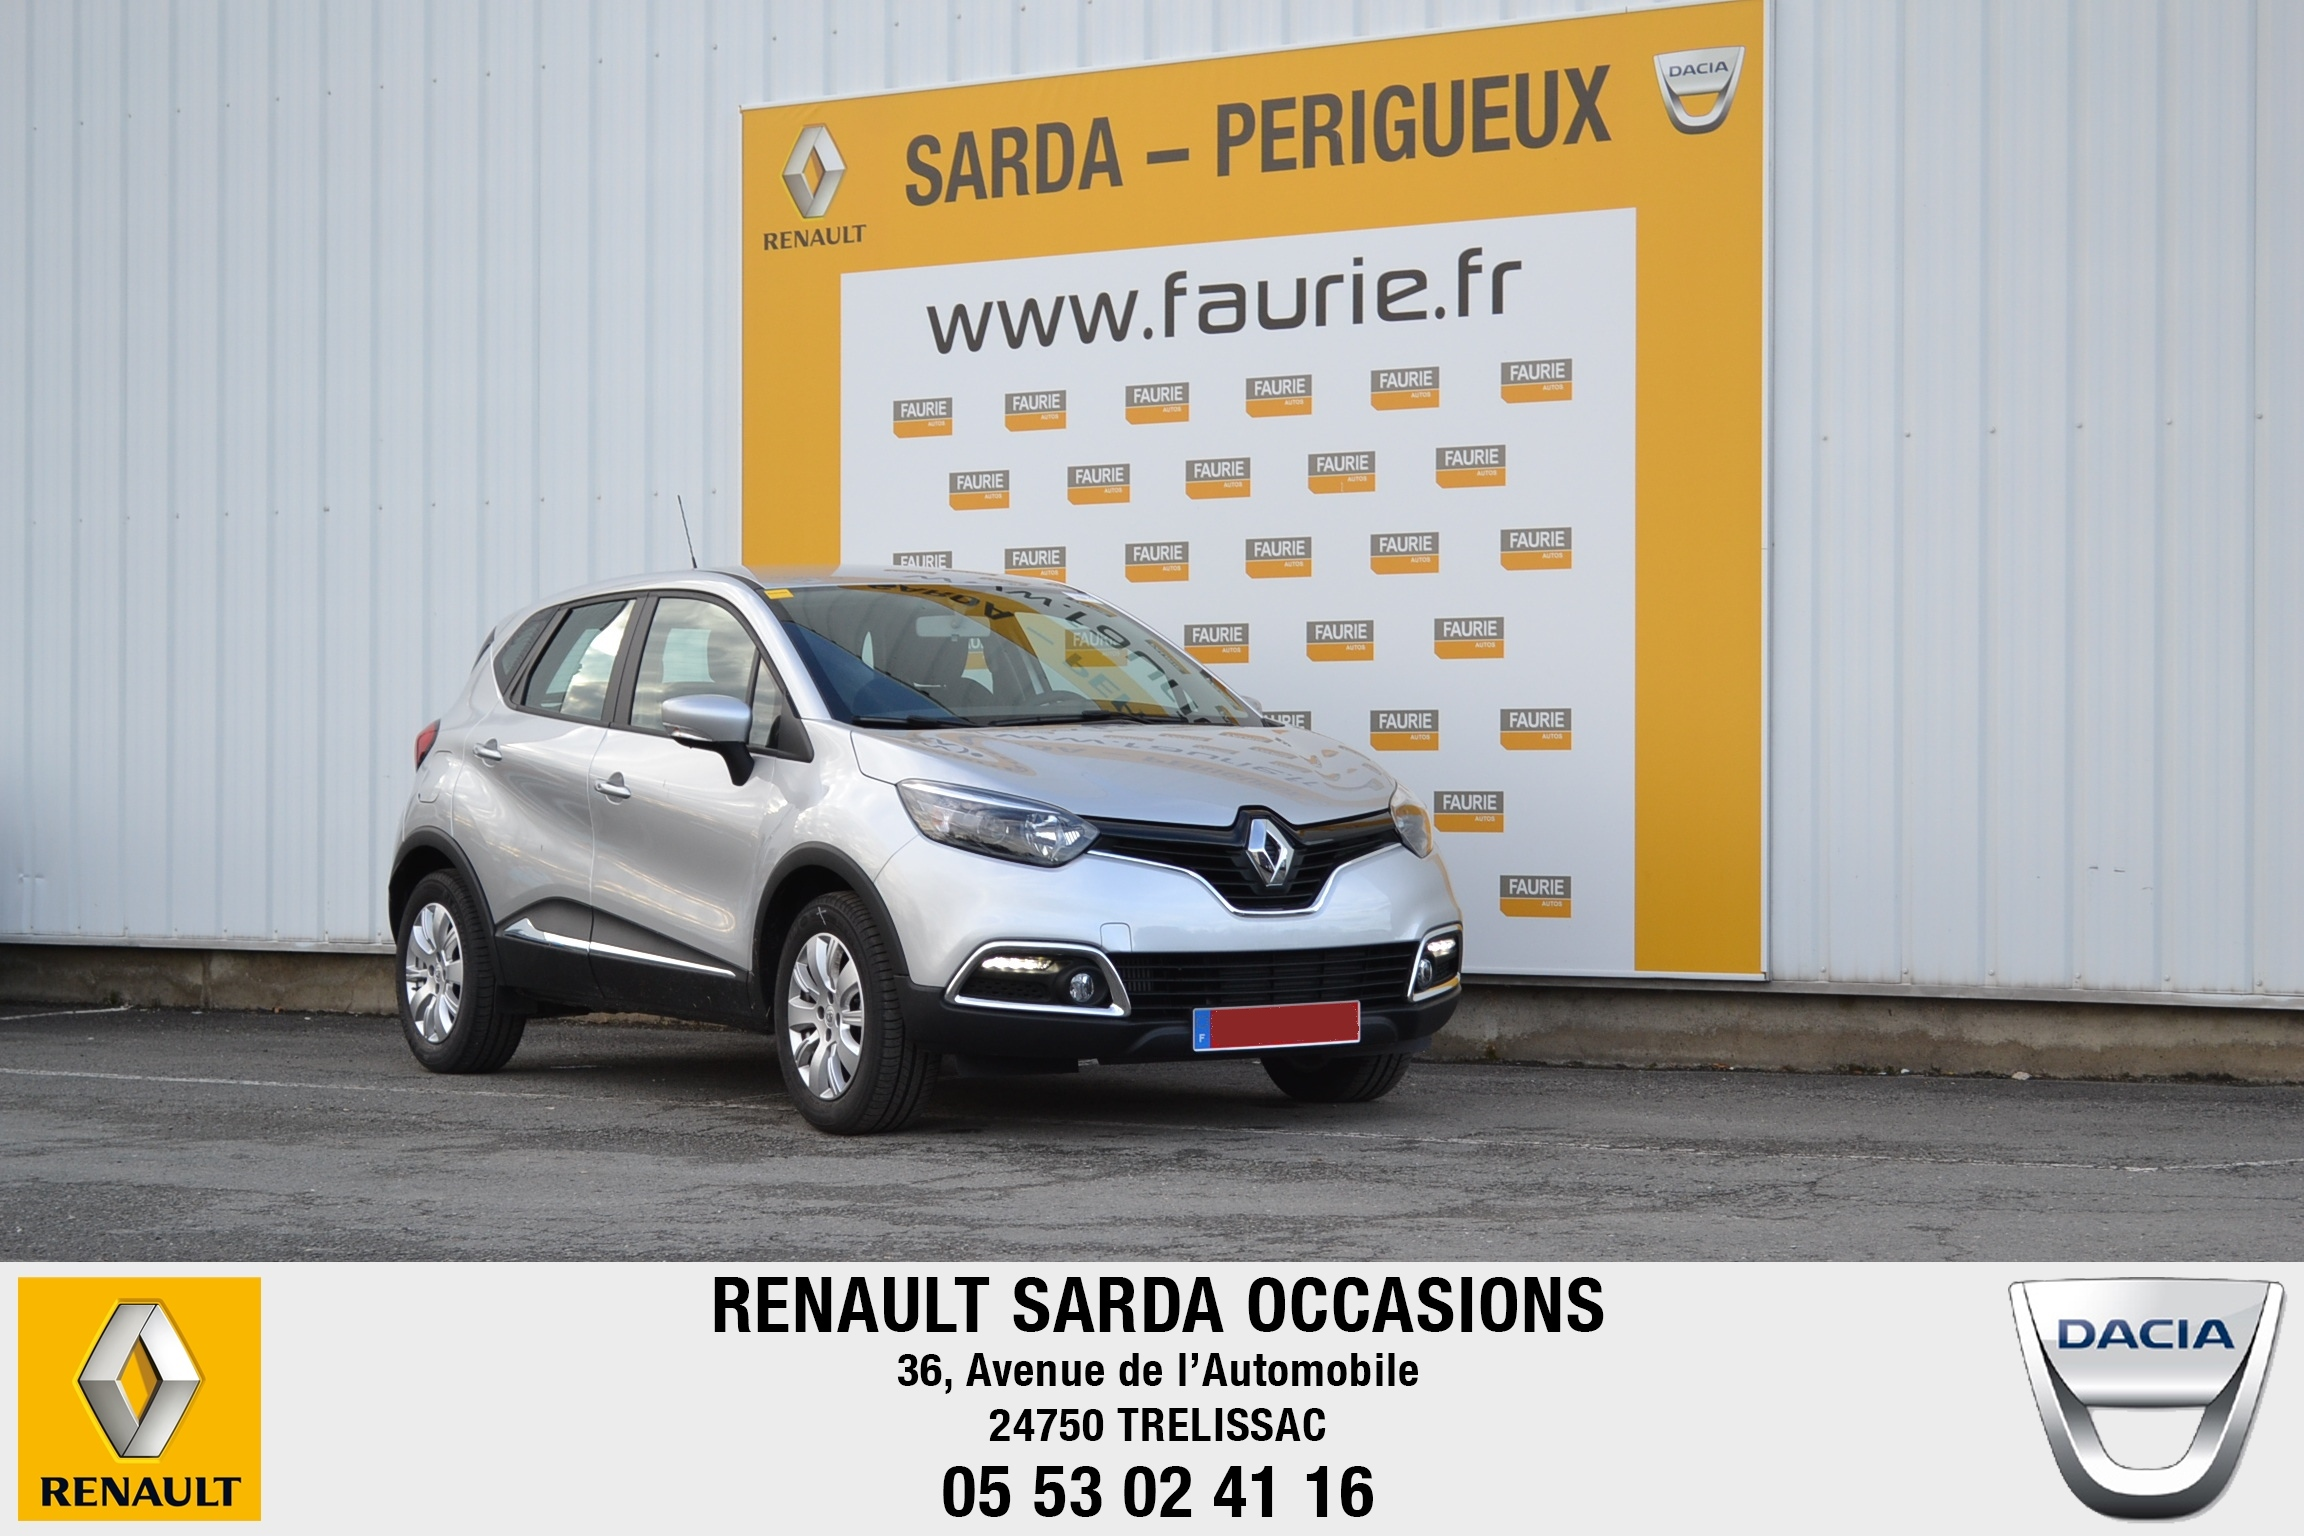 annonce renault captur 1 5 dci 110 energy 5cv helly hansen eco2 occasion renault perigueux sarda. Black Bedroom Furniture Sets. Home Design Ideas